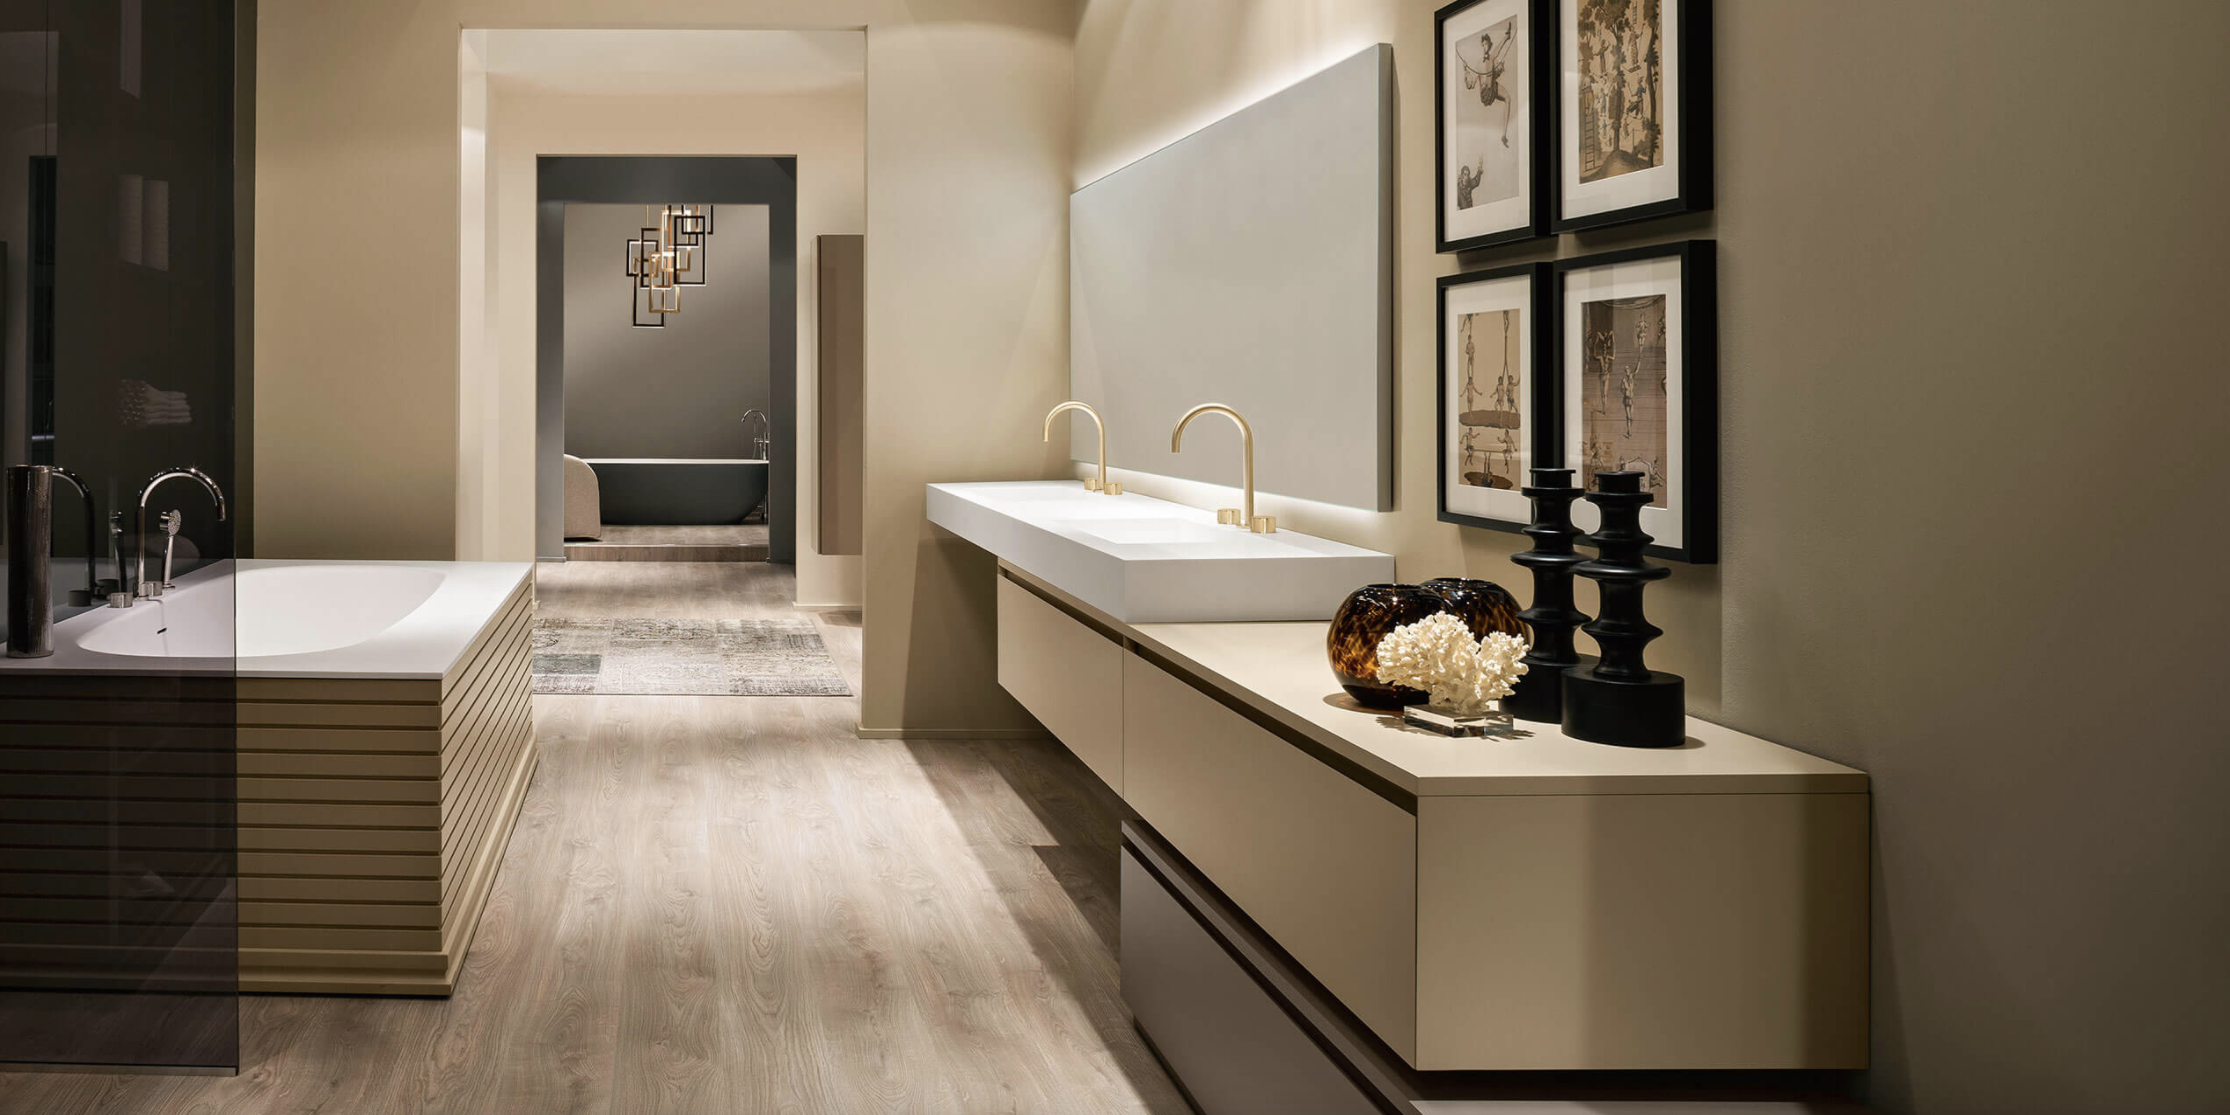 Inspiring Contemporary bathrooms from the best Frankfurt showrooms